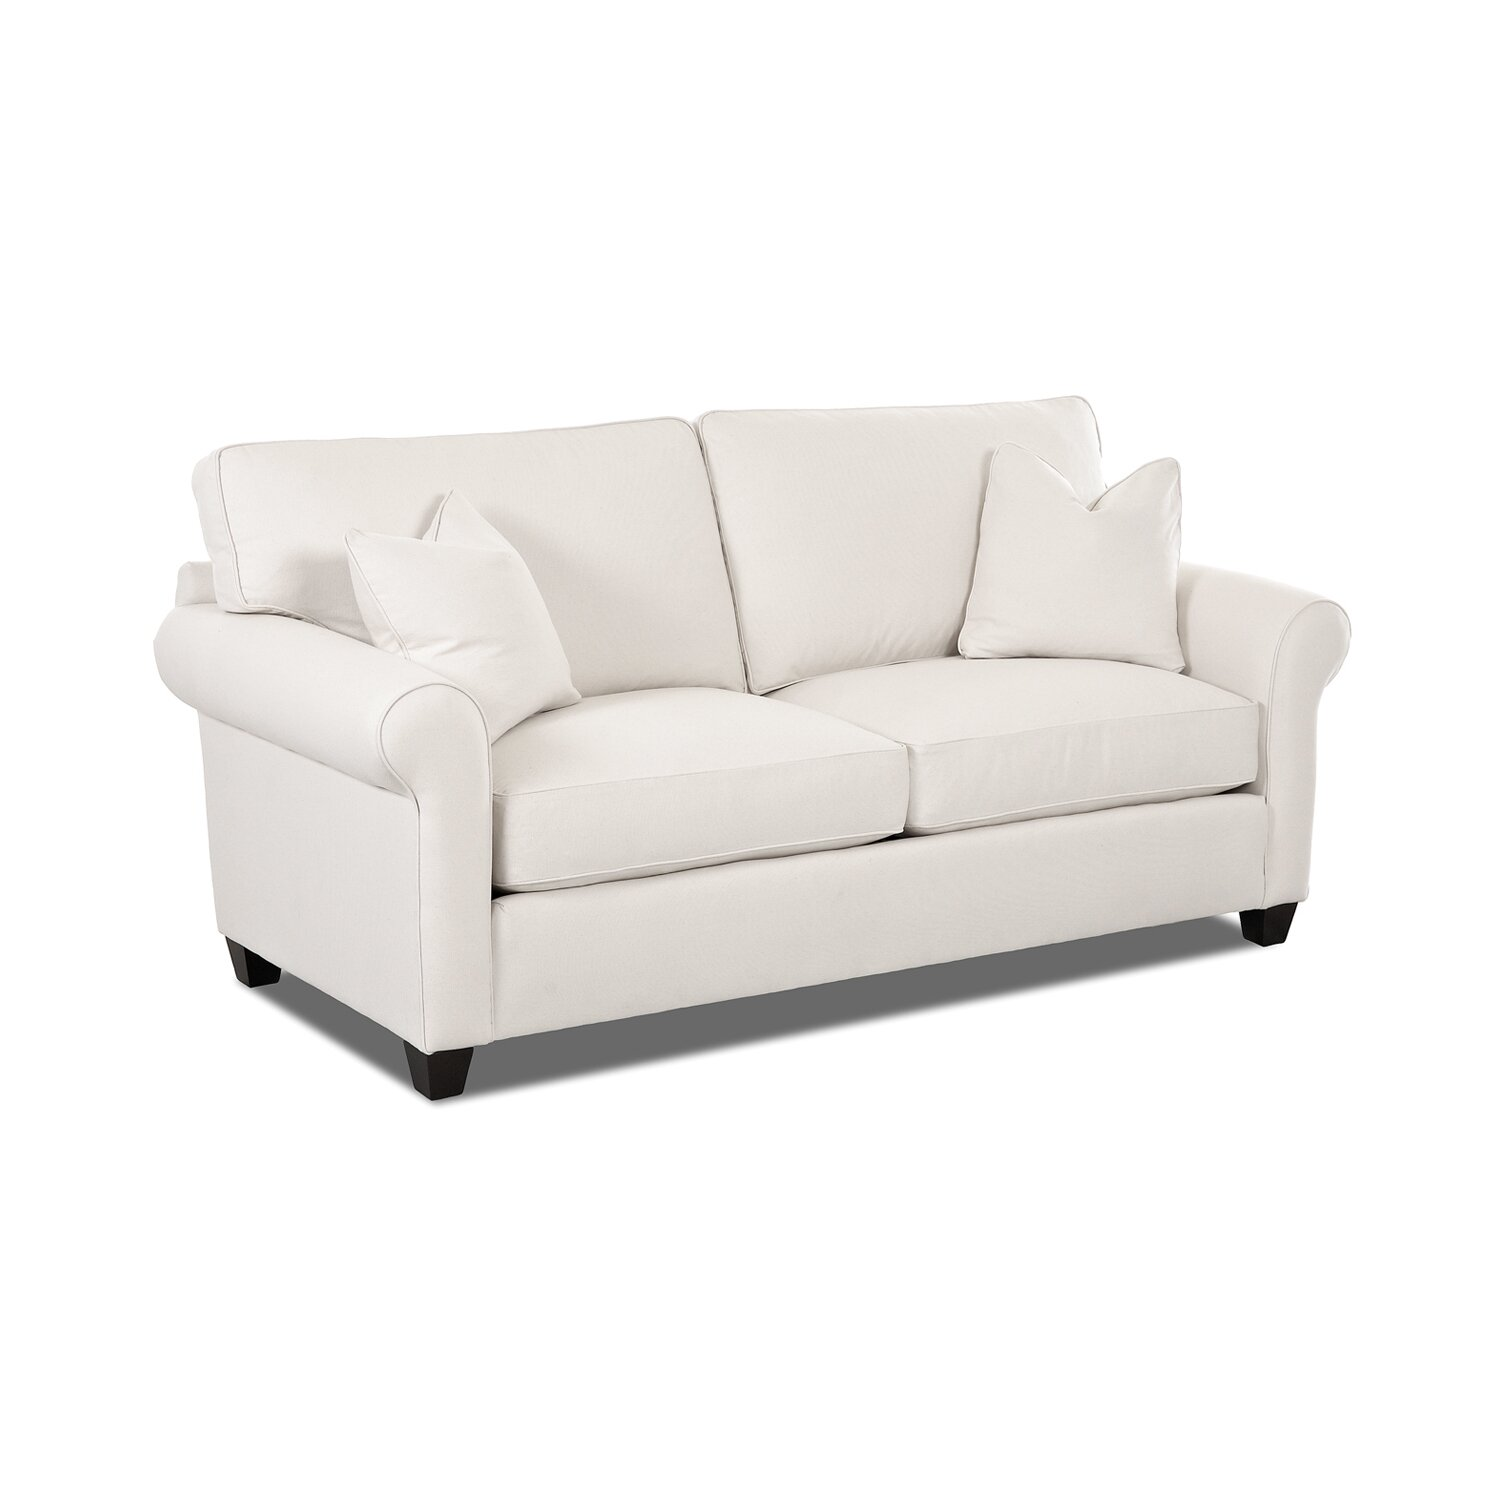 Wayfair custom upholstery eliza sofa reviews wayfairca for Wayfair furniture sectional sofa